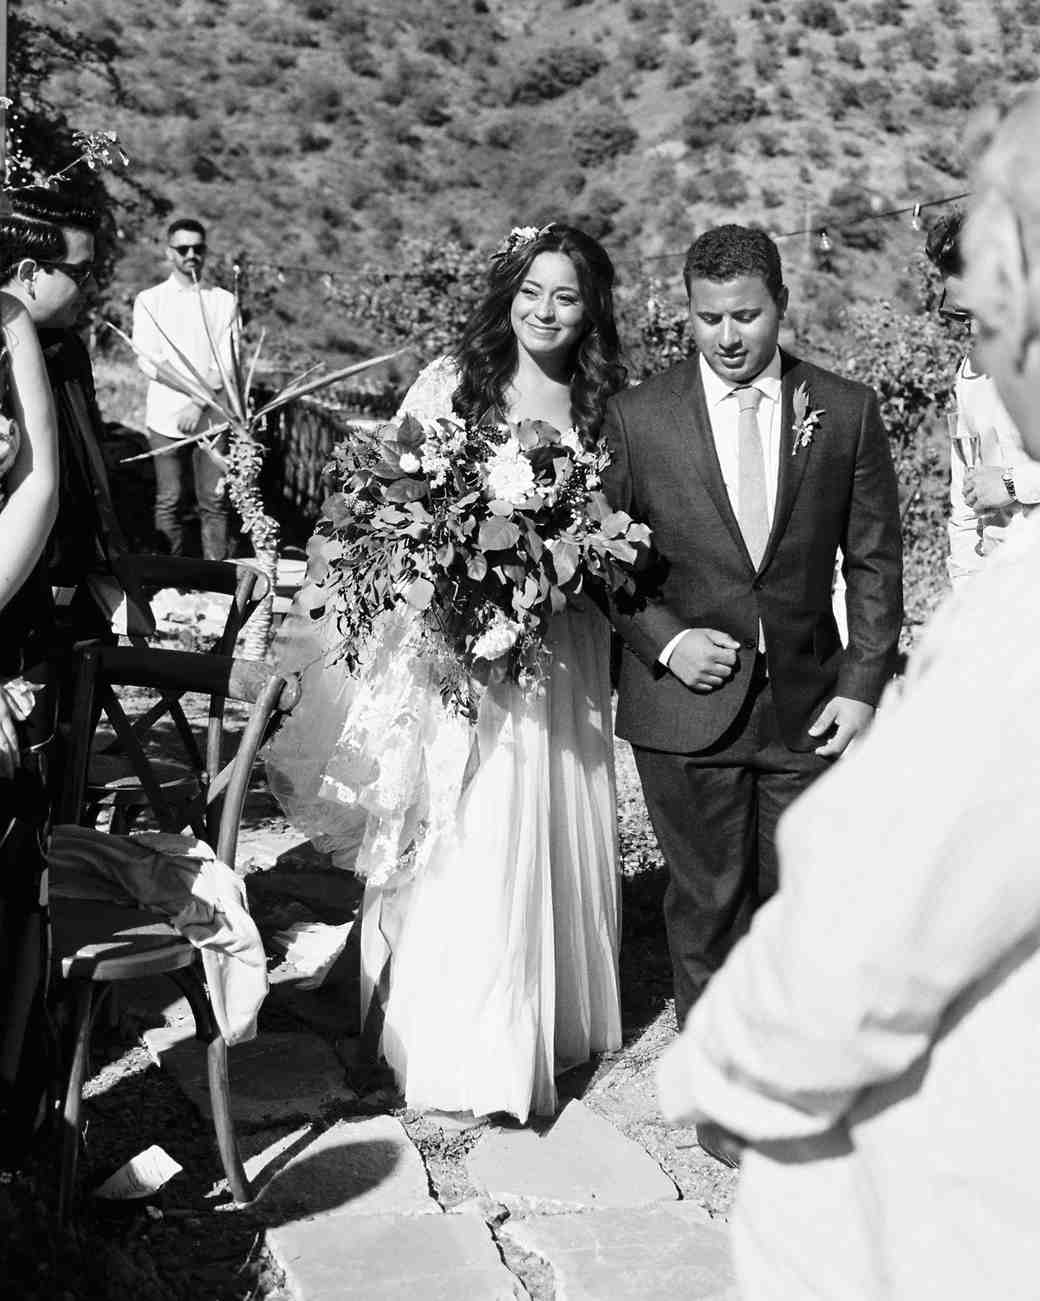 daphne jack wedding spain processional